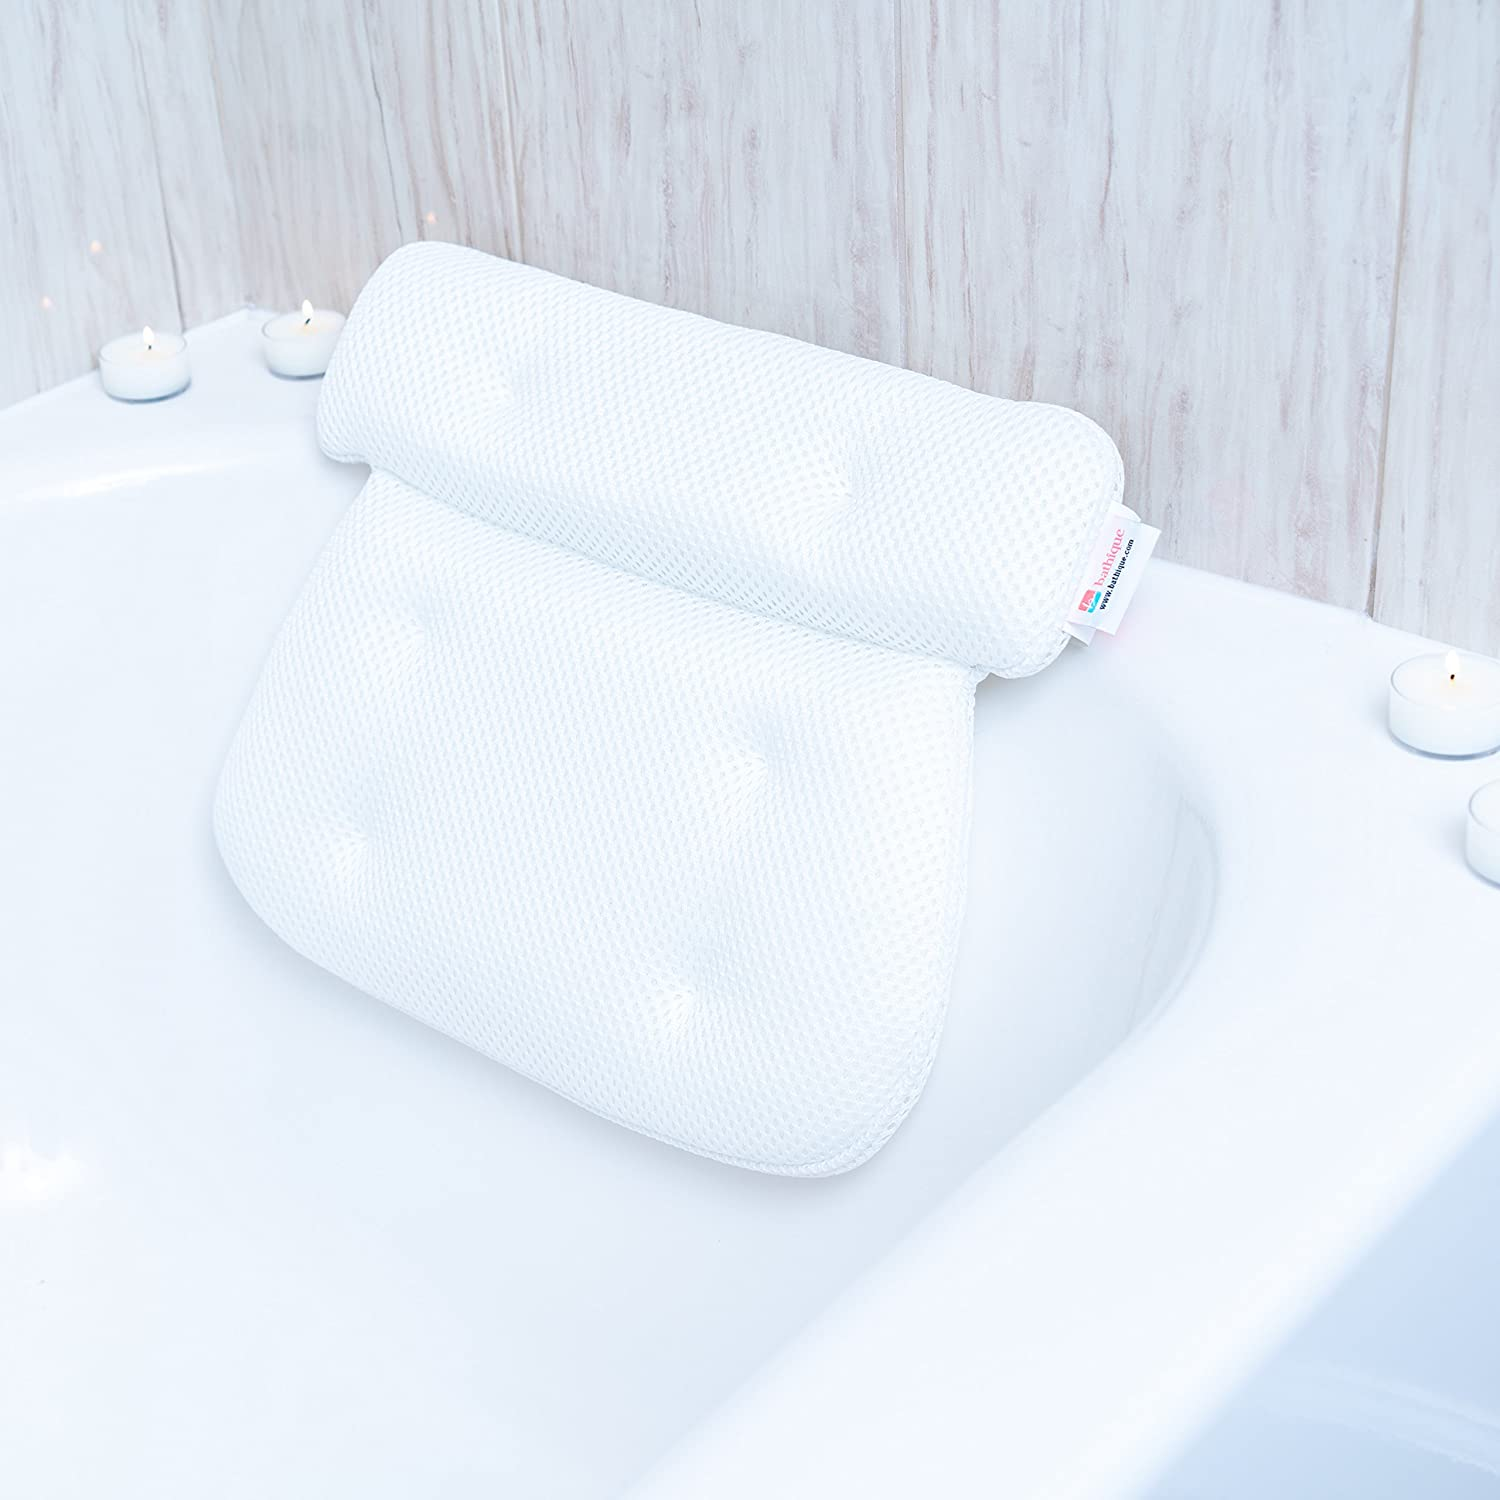 Large Bath Pillow Cushion with Non Slip Suction Cups - Perfect for ...